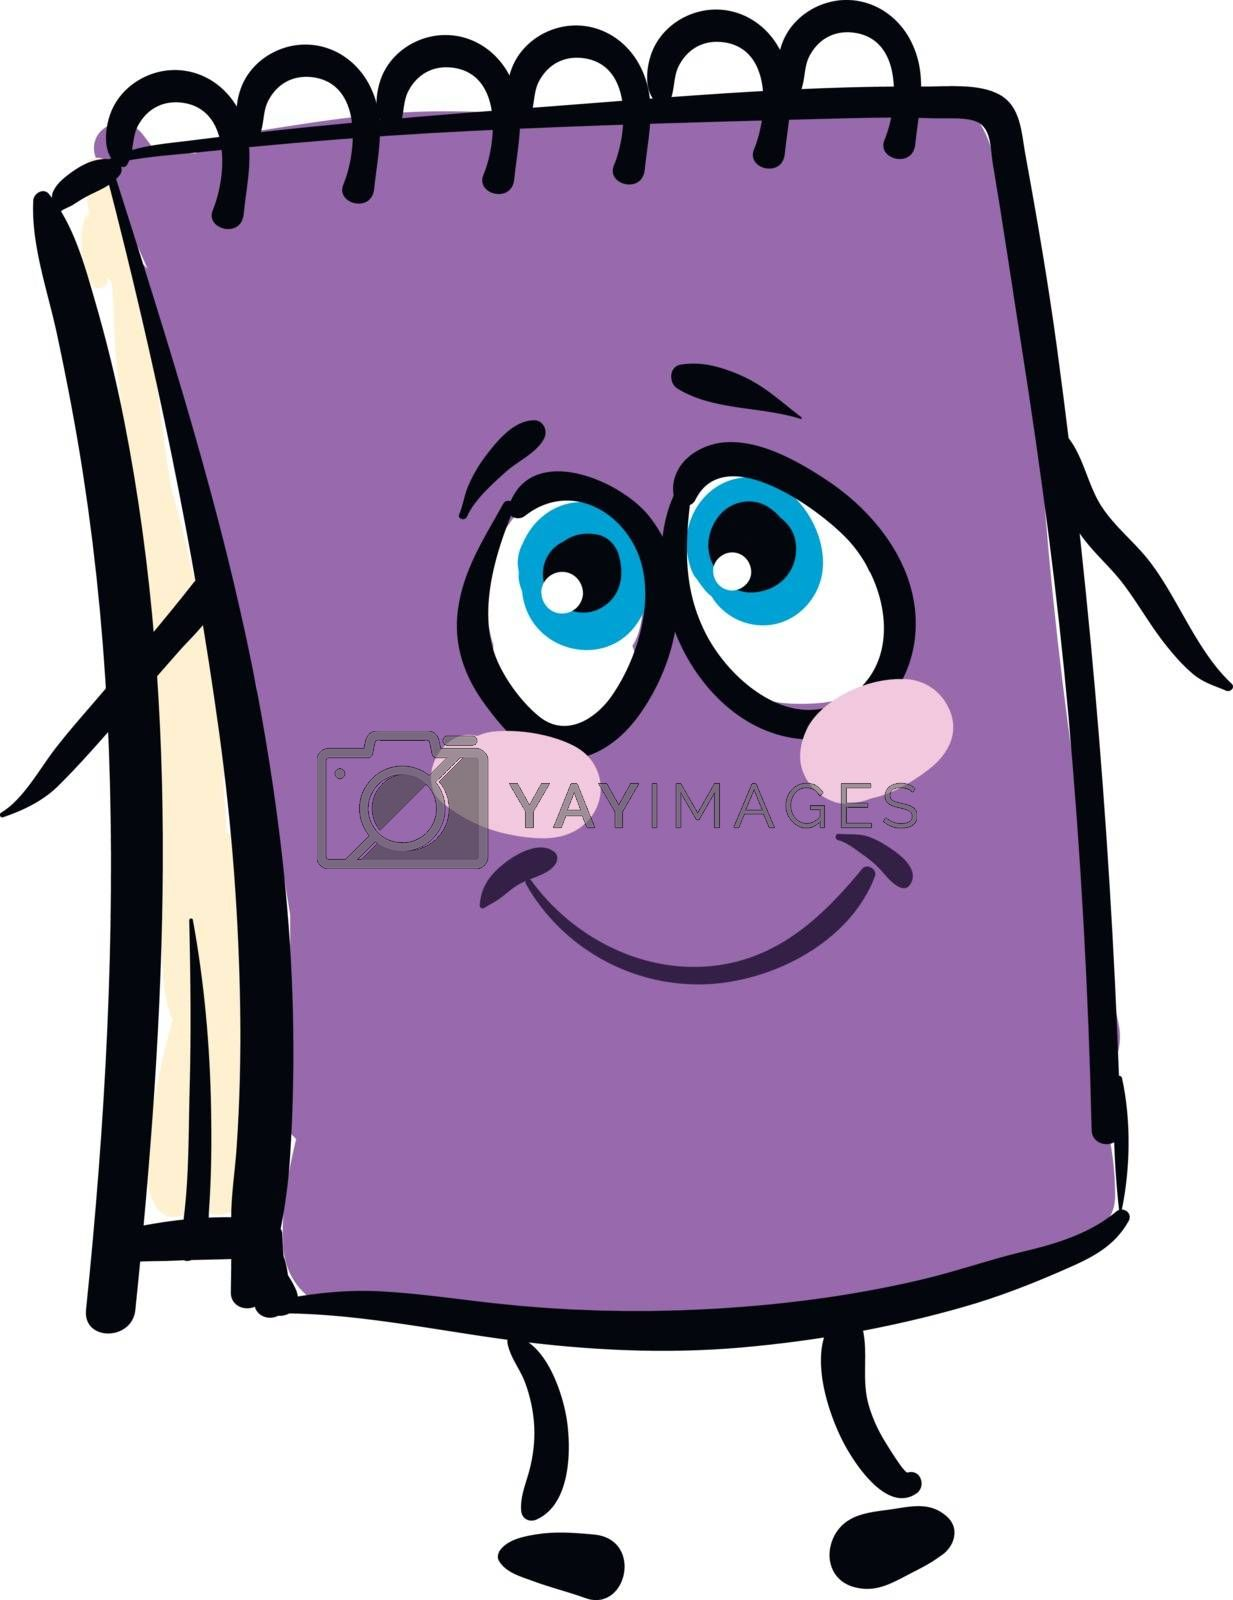 Royalty free image of Emoji funny happy purple-colored wire-bound notebook vector or c by Morphart